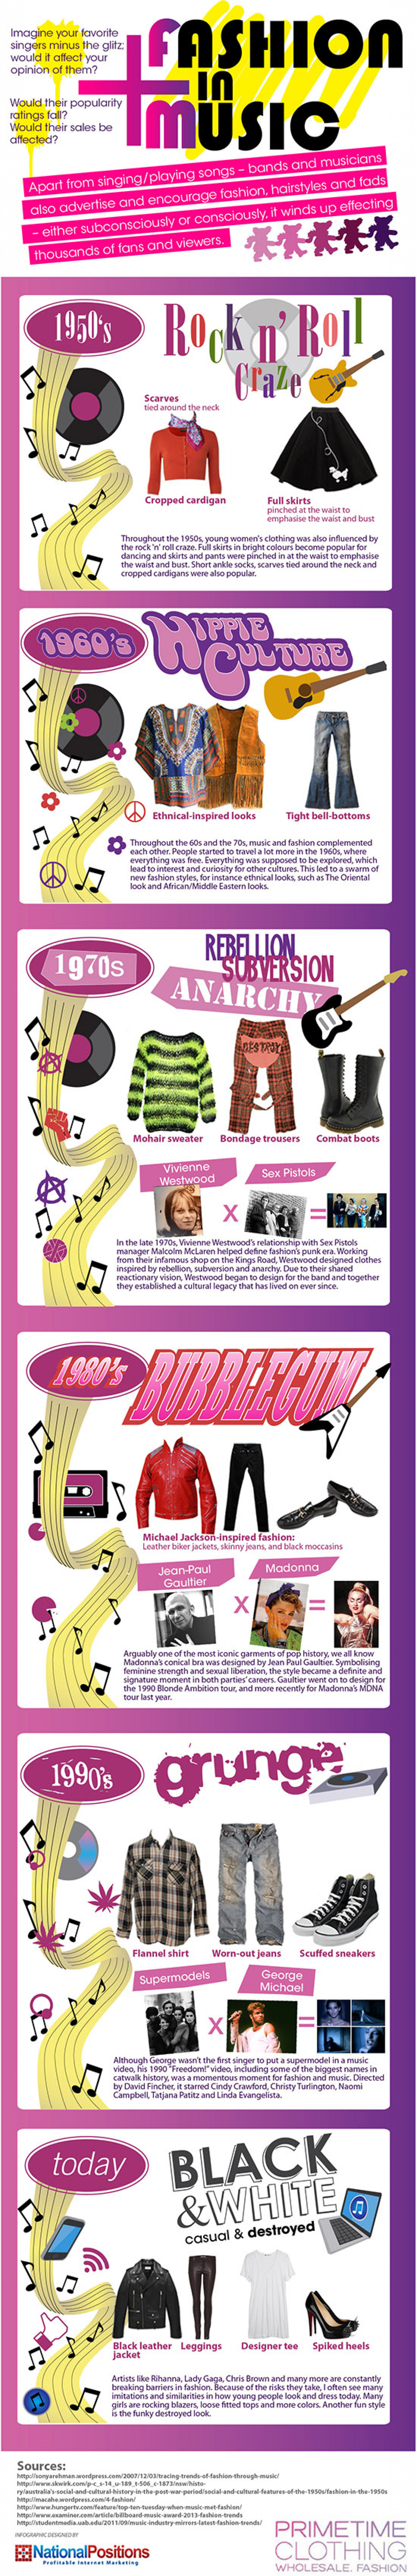 The Evolution of Fashion In Music Infographic